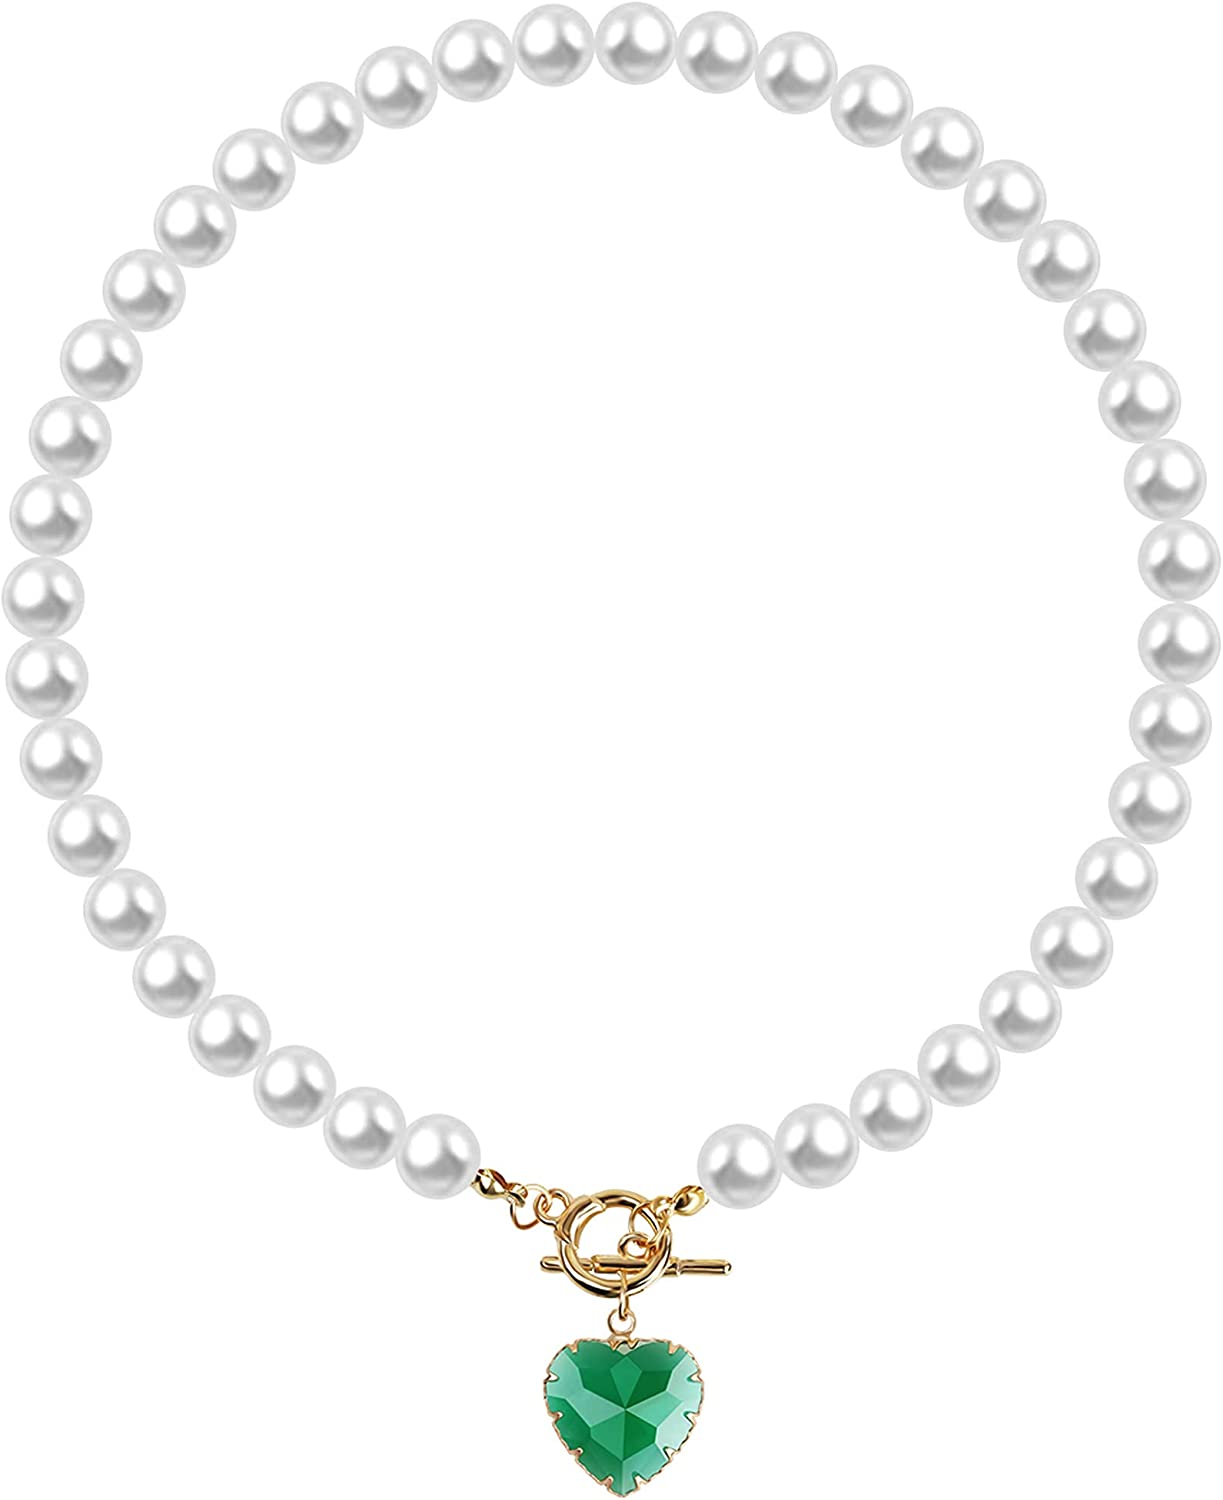 MISS RIGHT Crystal Love Heart Pearl Necklace for Women Girls, 14K Gold Plated Vintage Toggle Choker Pendant Necklace, 17''